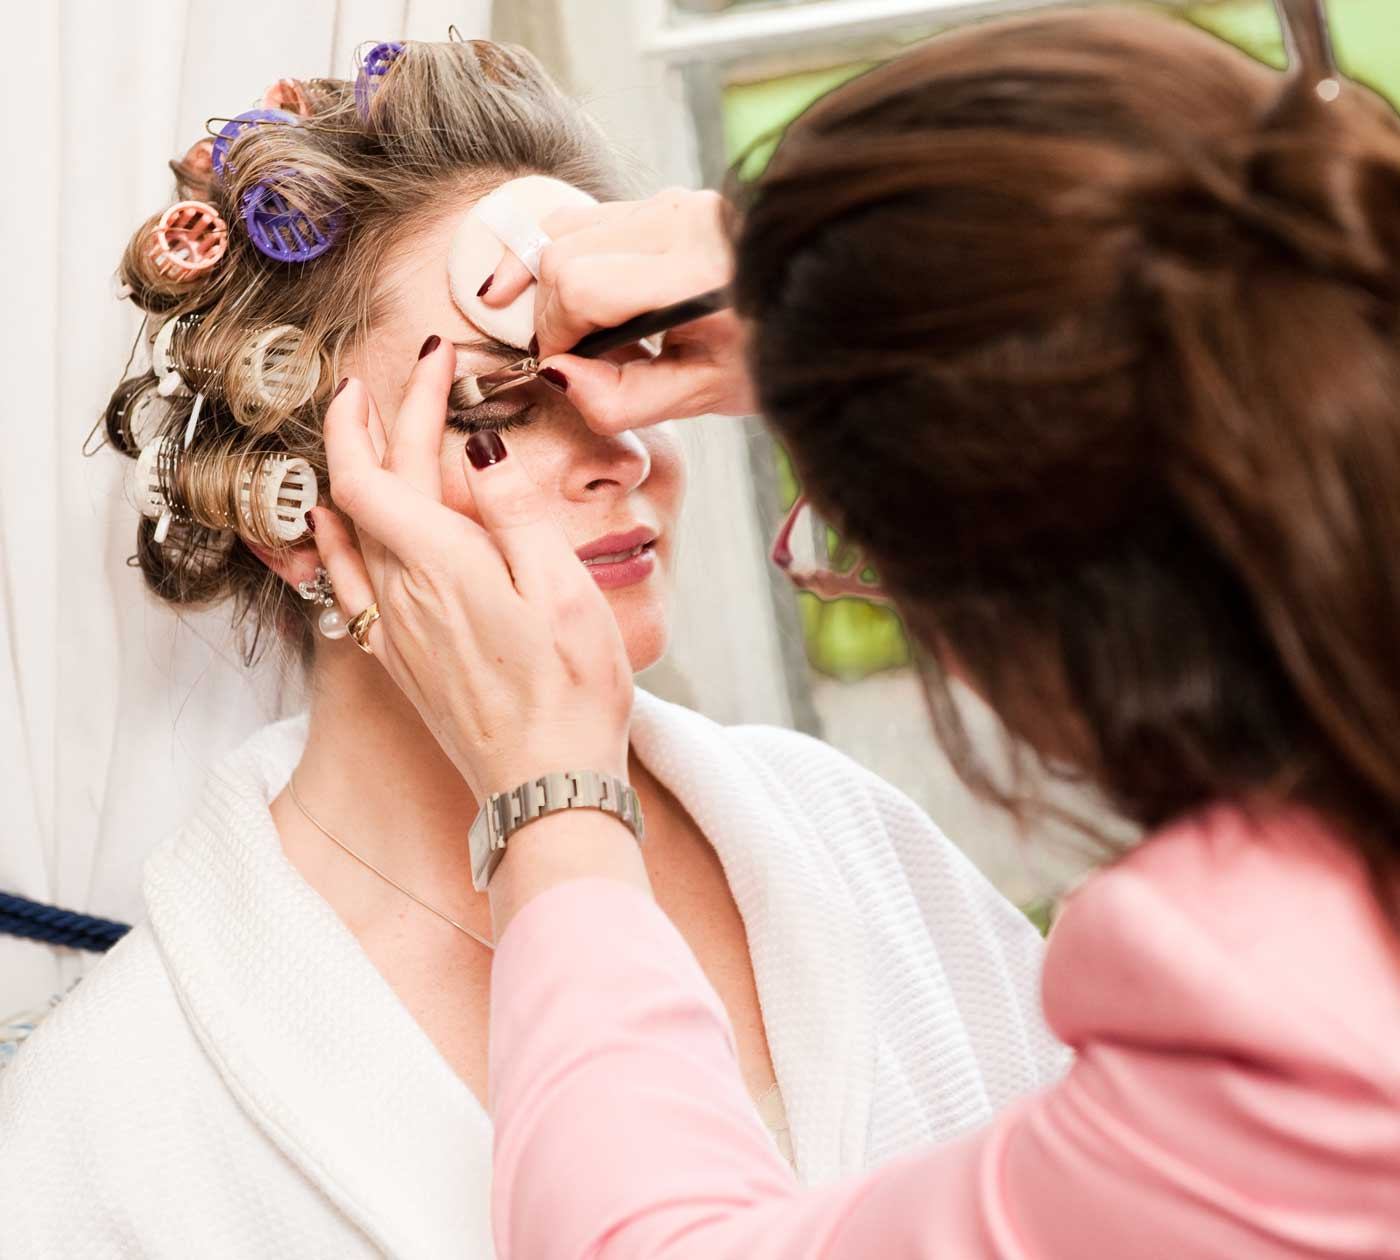 Bride hair in rollers makeup artist applying makeup